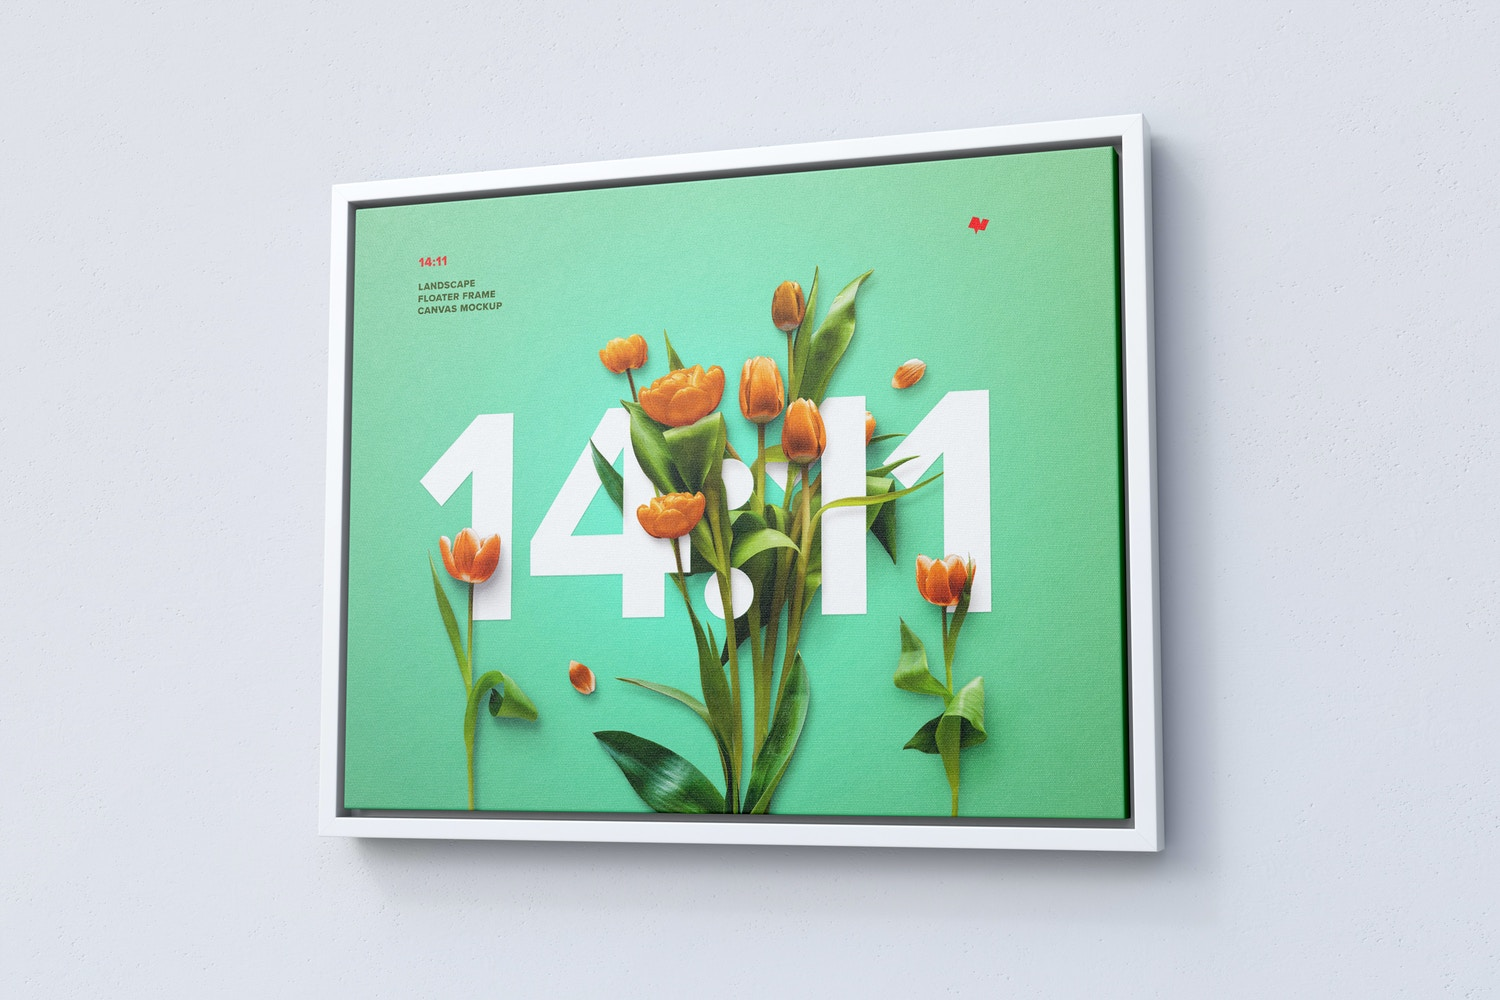 14:11 Landscape Canvas Mockup in Floater Frame, Right View